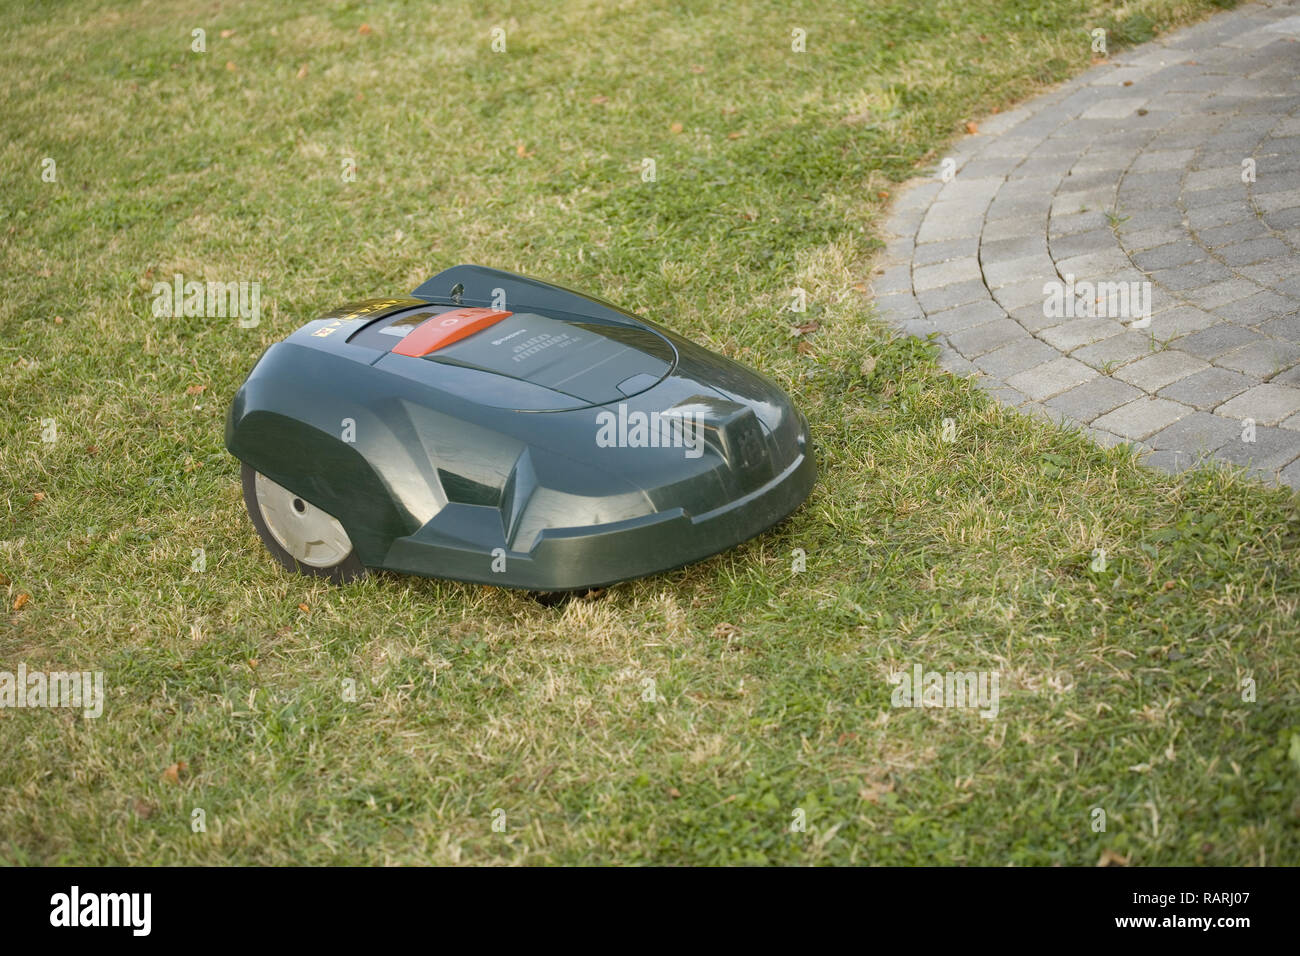 Automatic robot lawn mower cutting grass near a patio - Stock Image